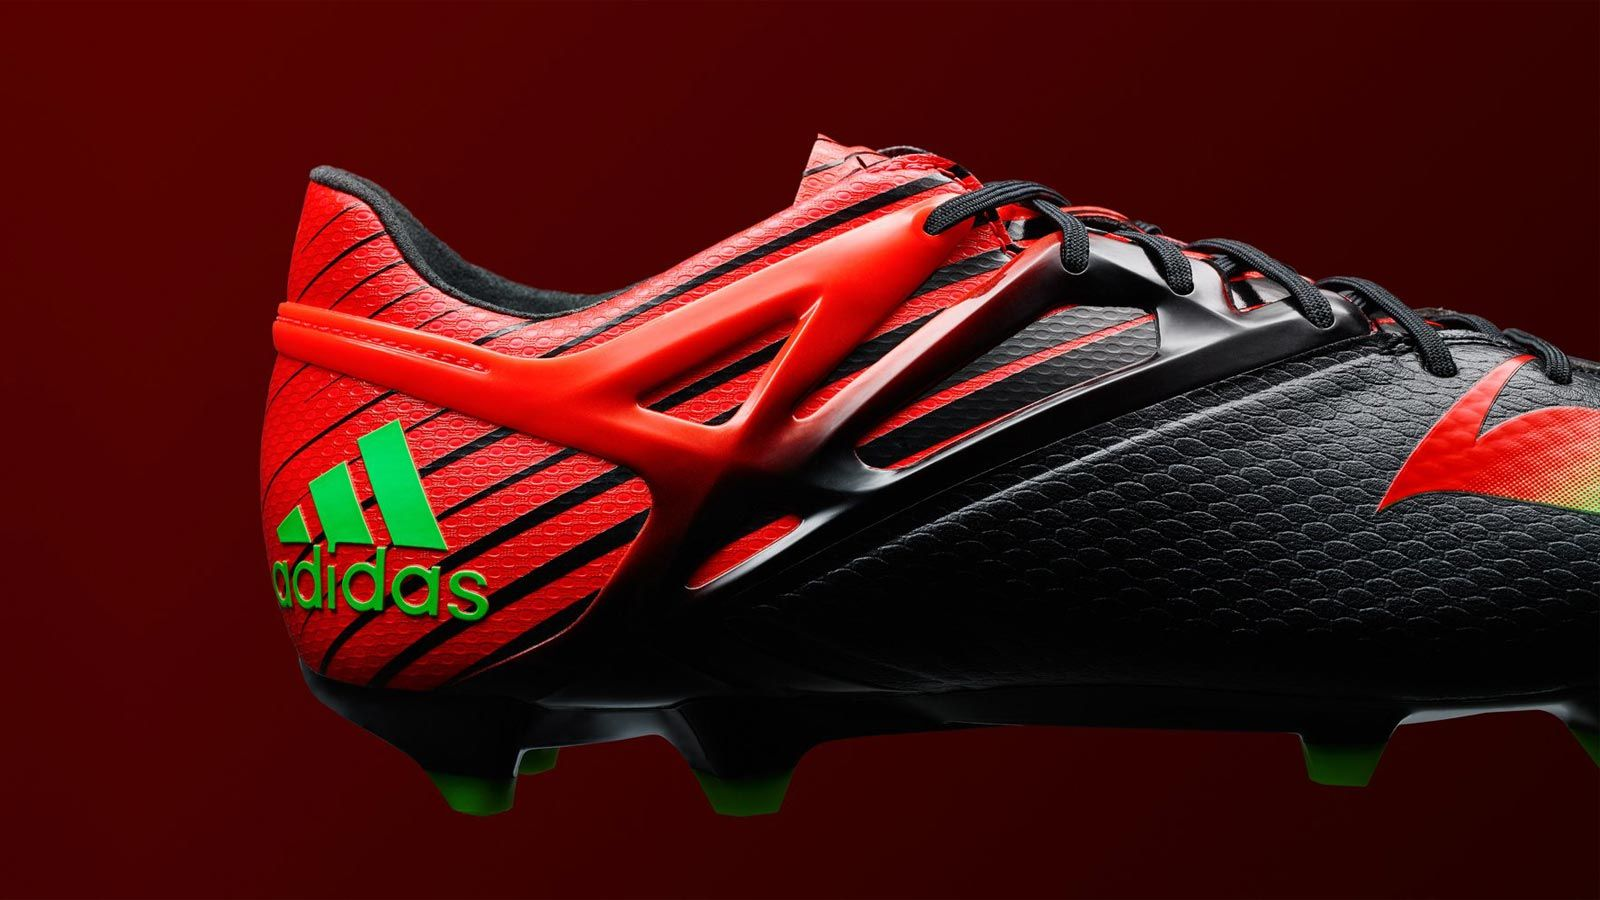 And And BootsMessi Pinterest BootsMessi Boots Pinterest AdidasShoes Boots AdidasShoes WIEe9YDH2